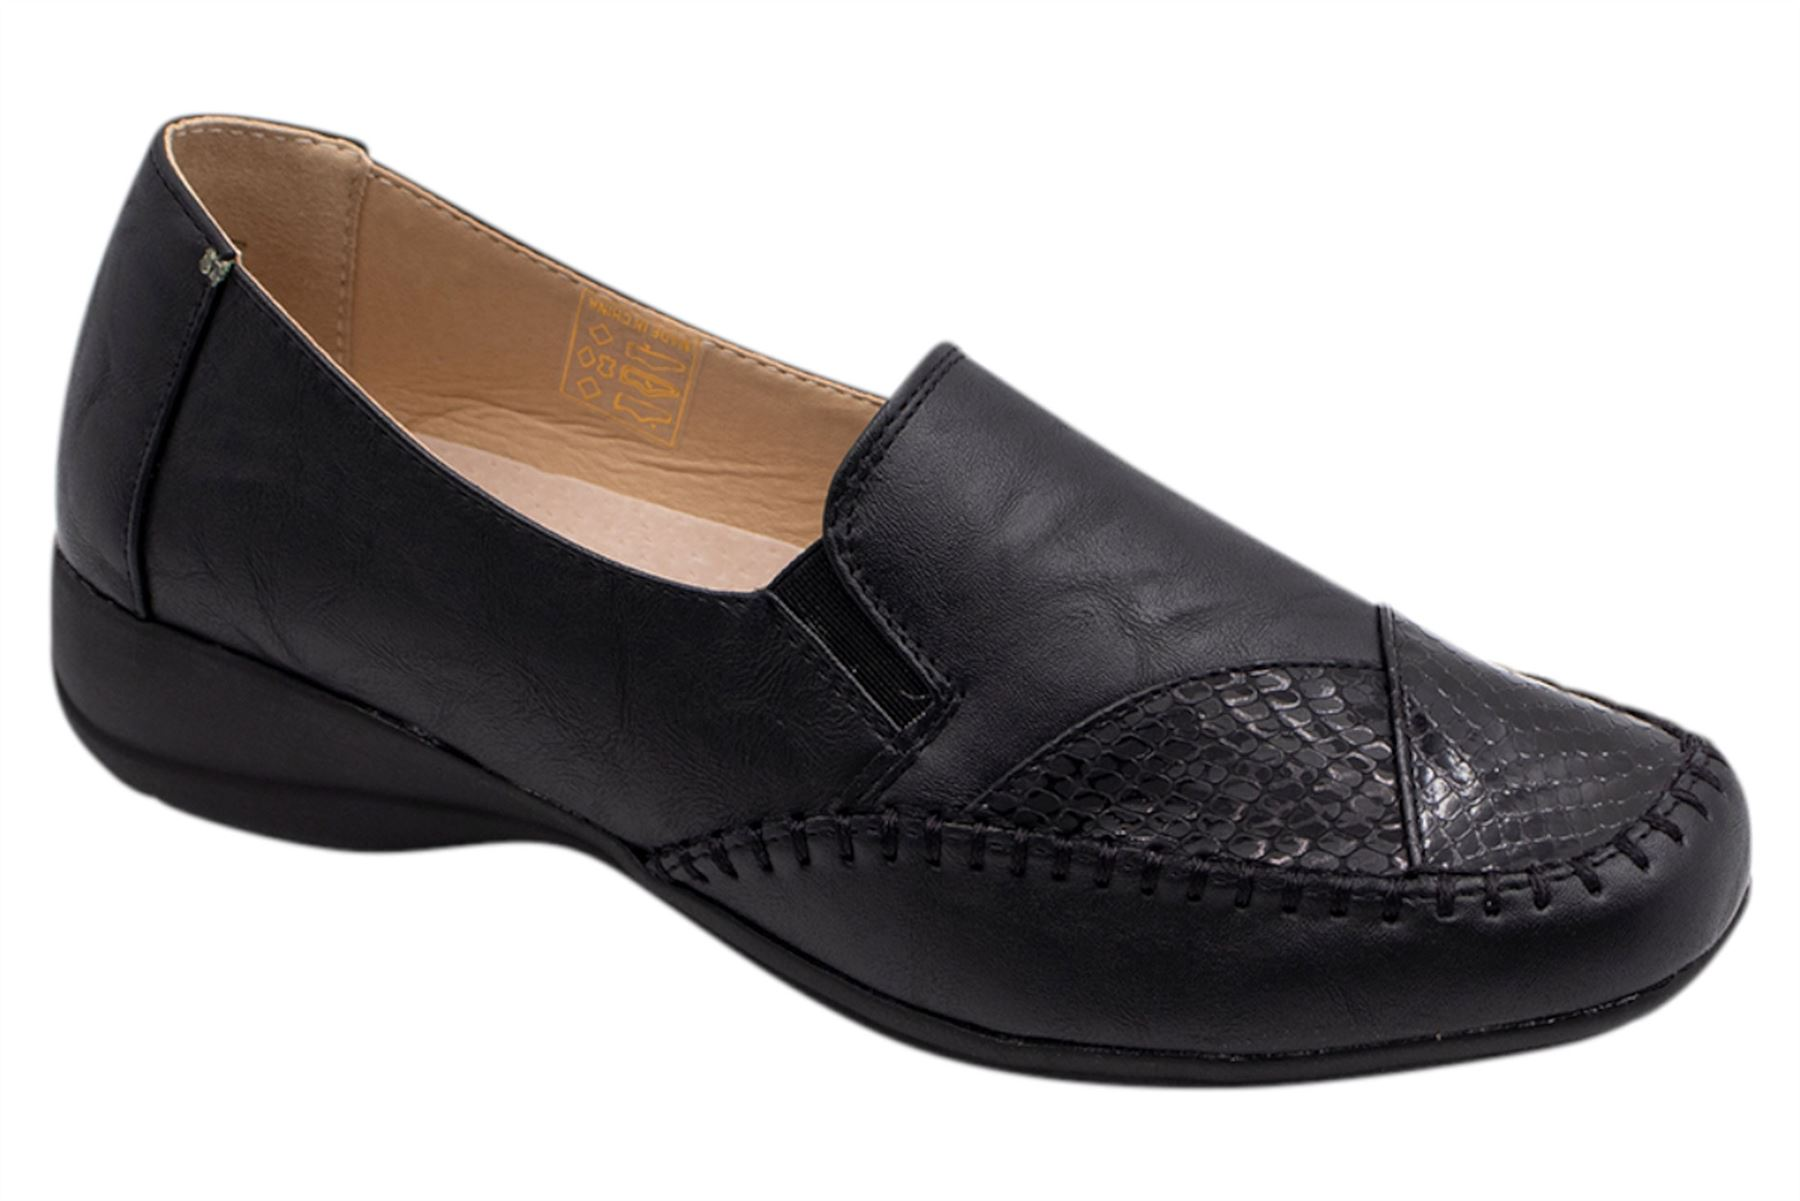 Womens-Flat-Shoes-Ladies-Pumps-Office-Work-Casual-Slip-On-Loafer-Size thumbnail 12